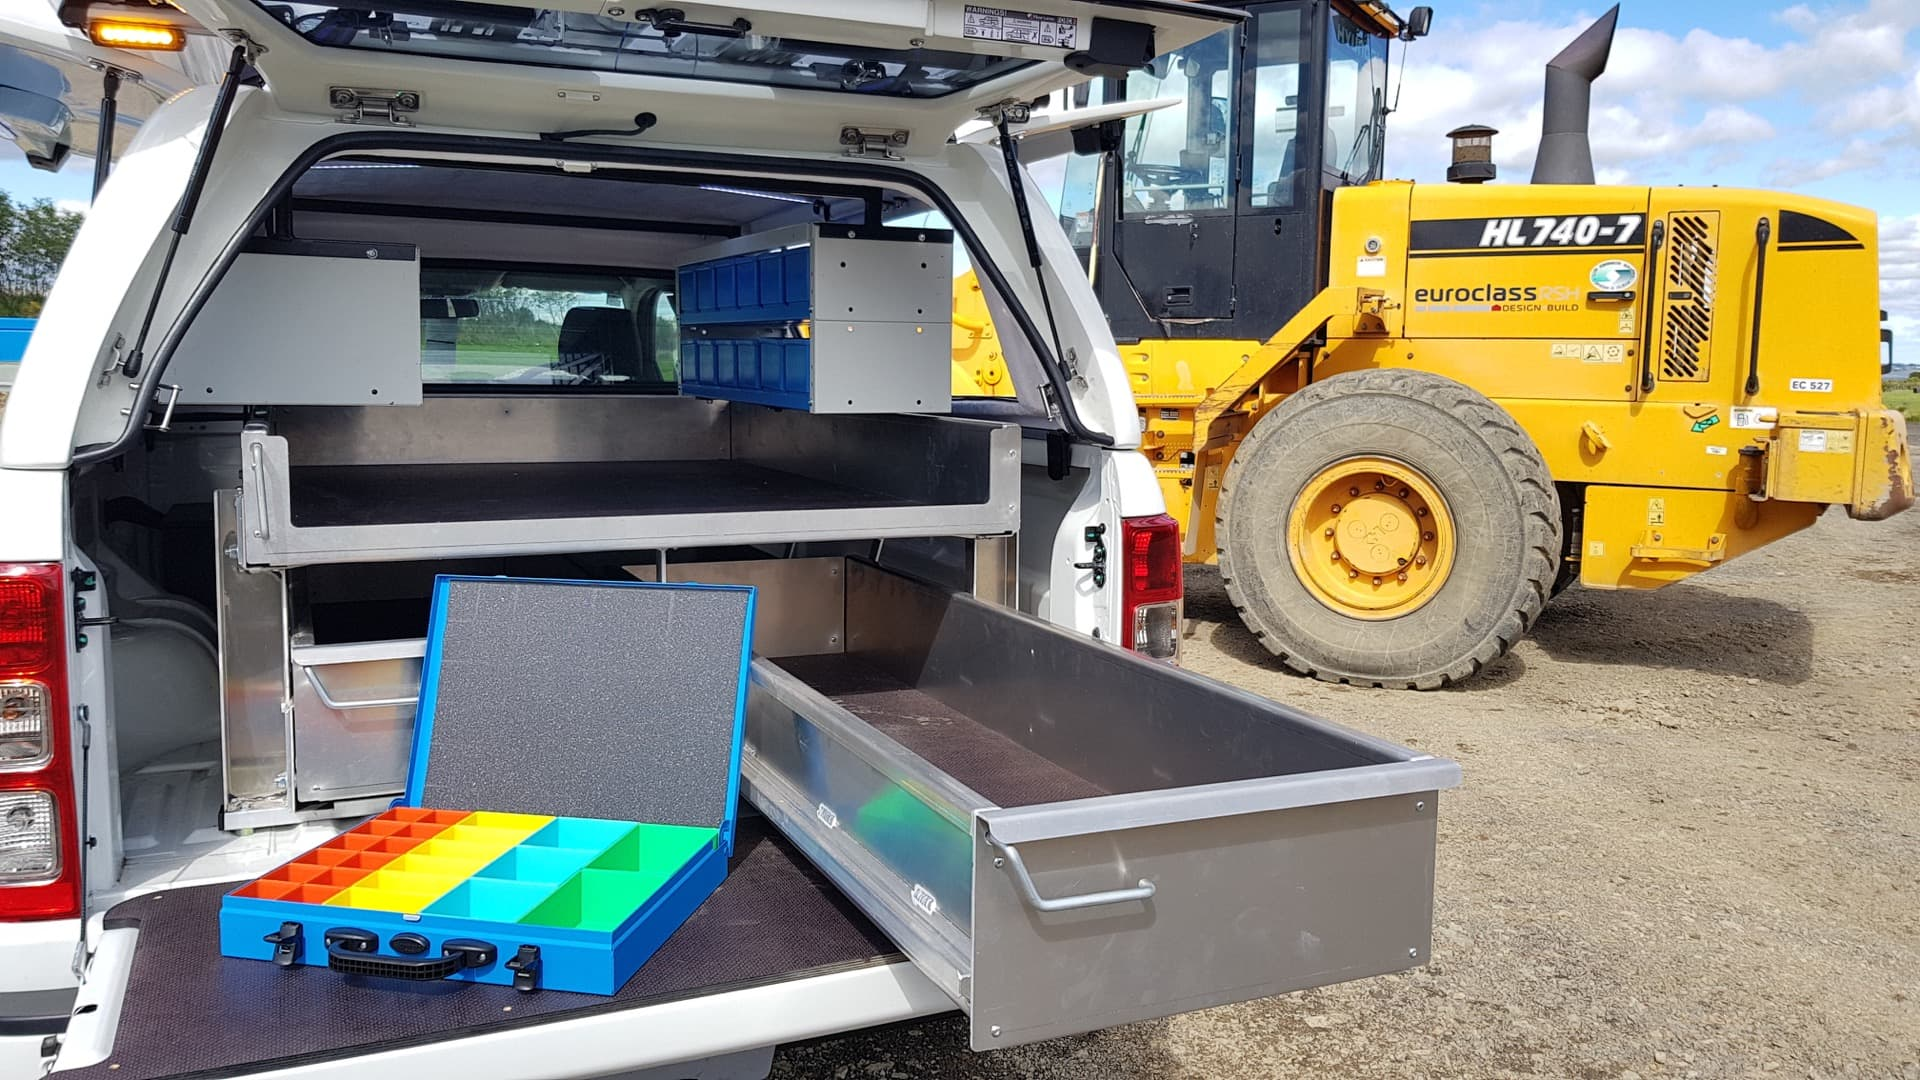 Tool box and sliding tray for technicians ute